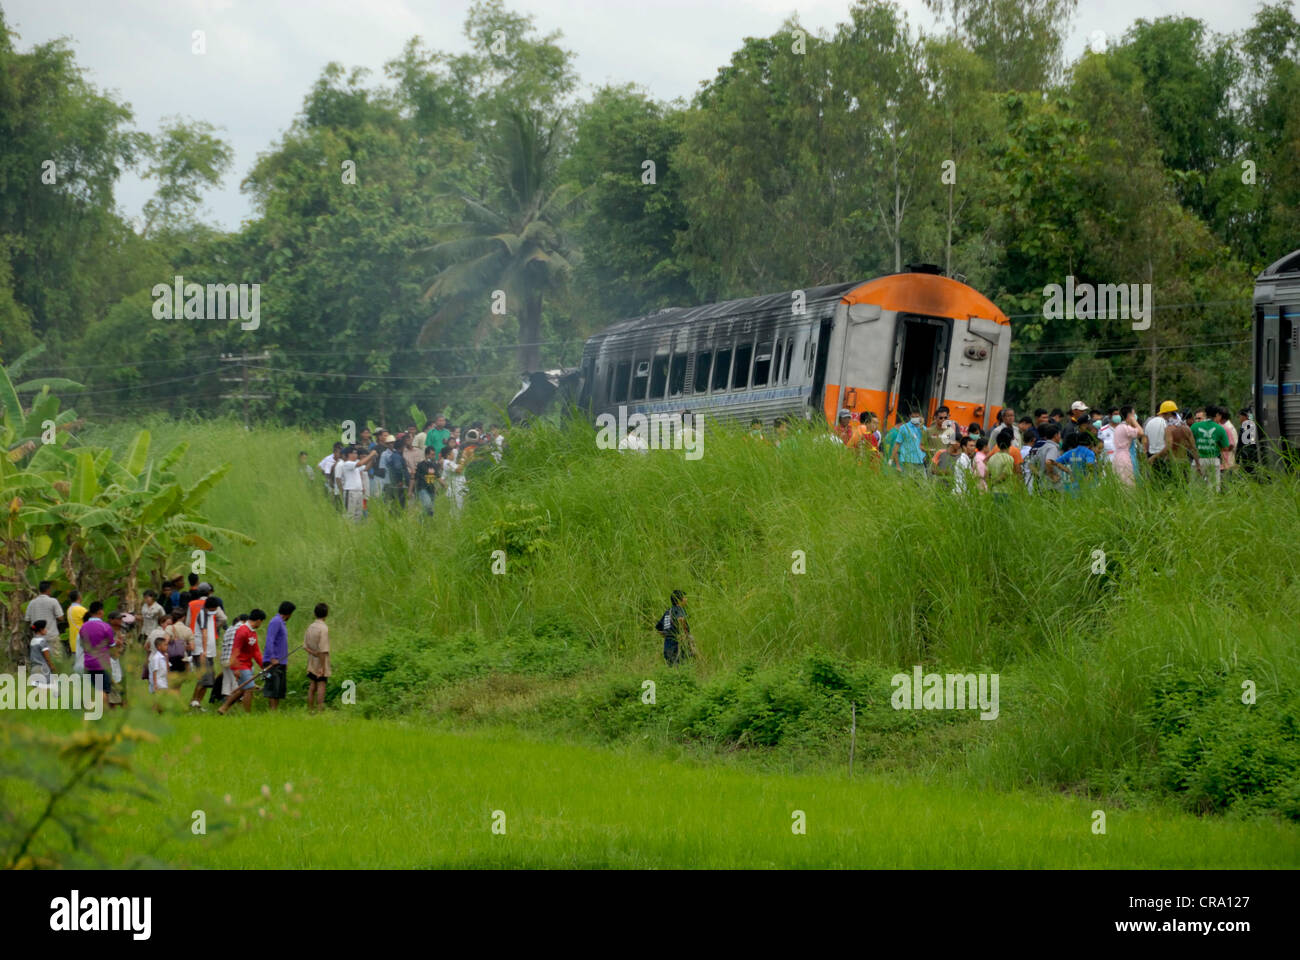 More and more onlookers arriving to see the burnt out train on the 14/06/2011 in Phitsanulok Thailand - Stock Image